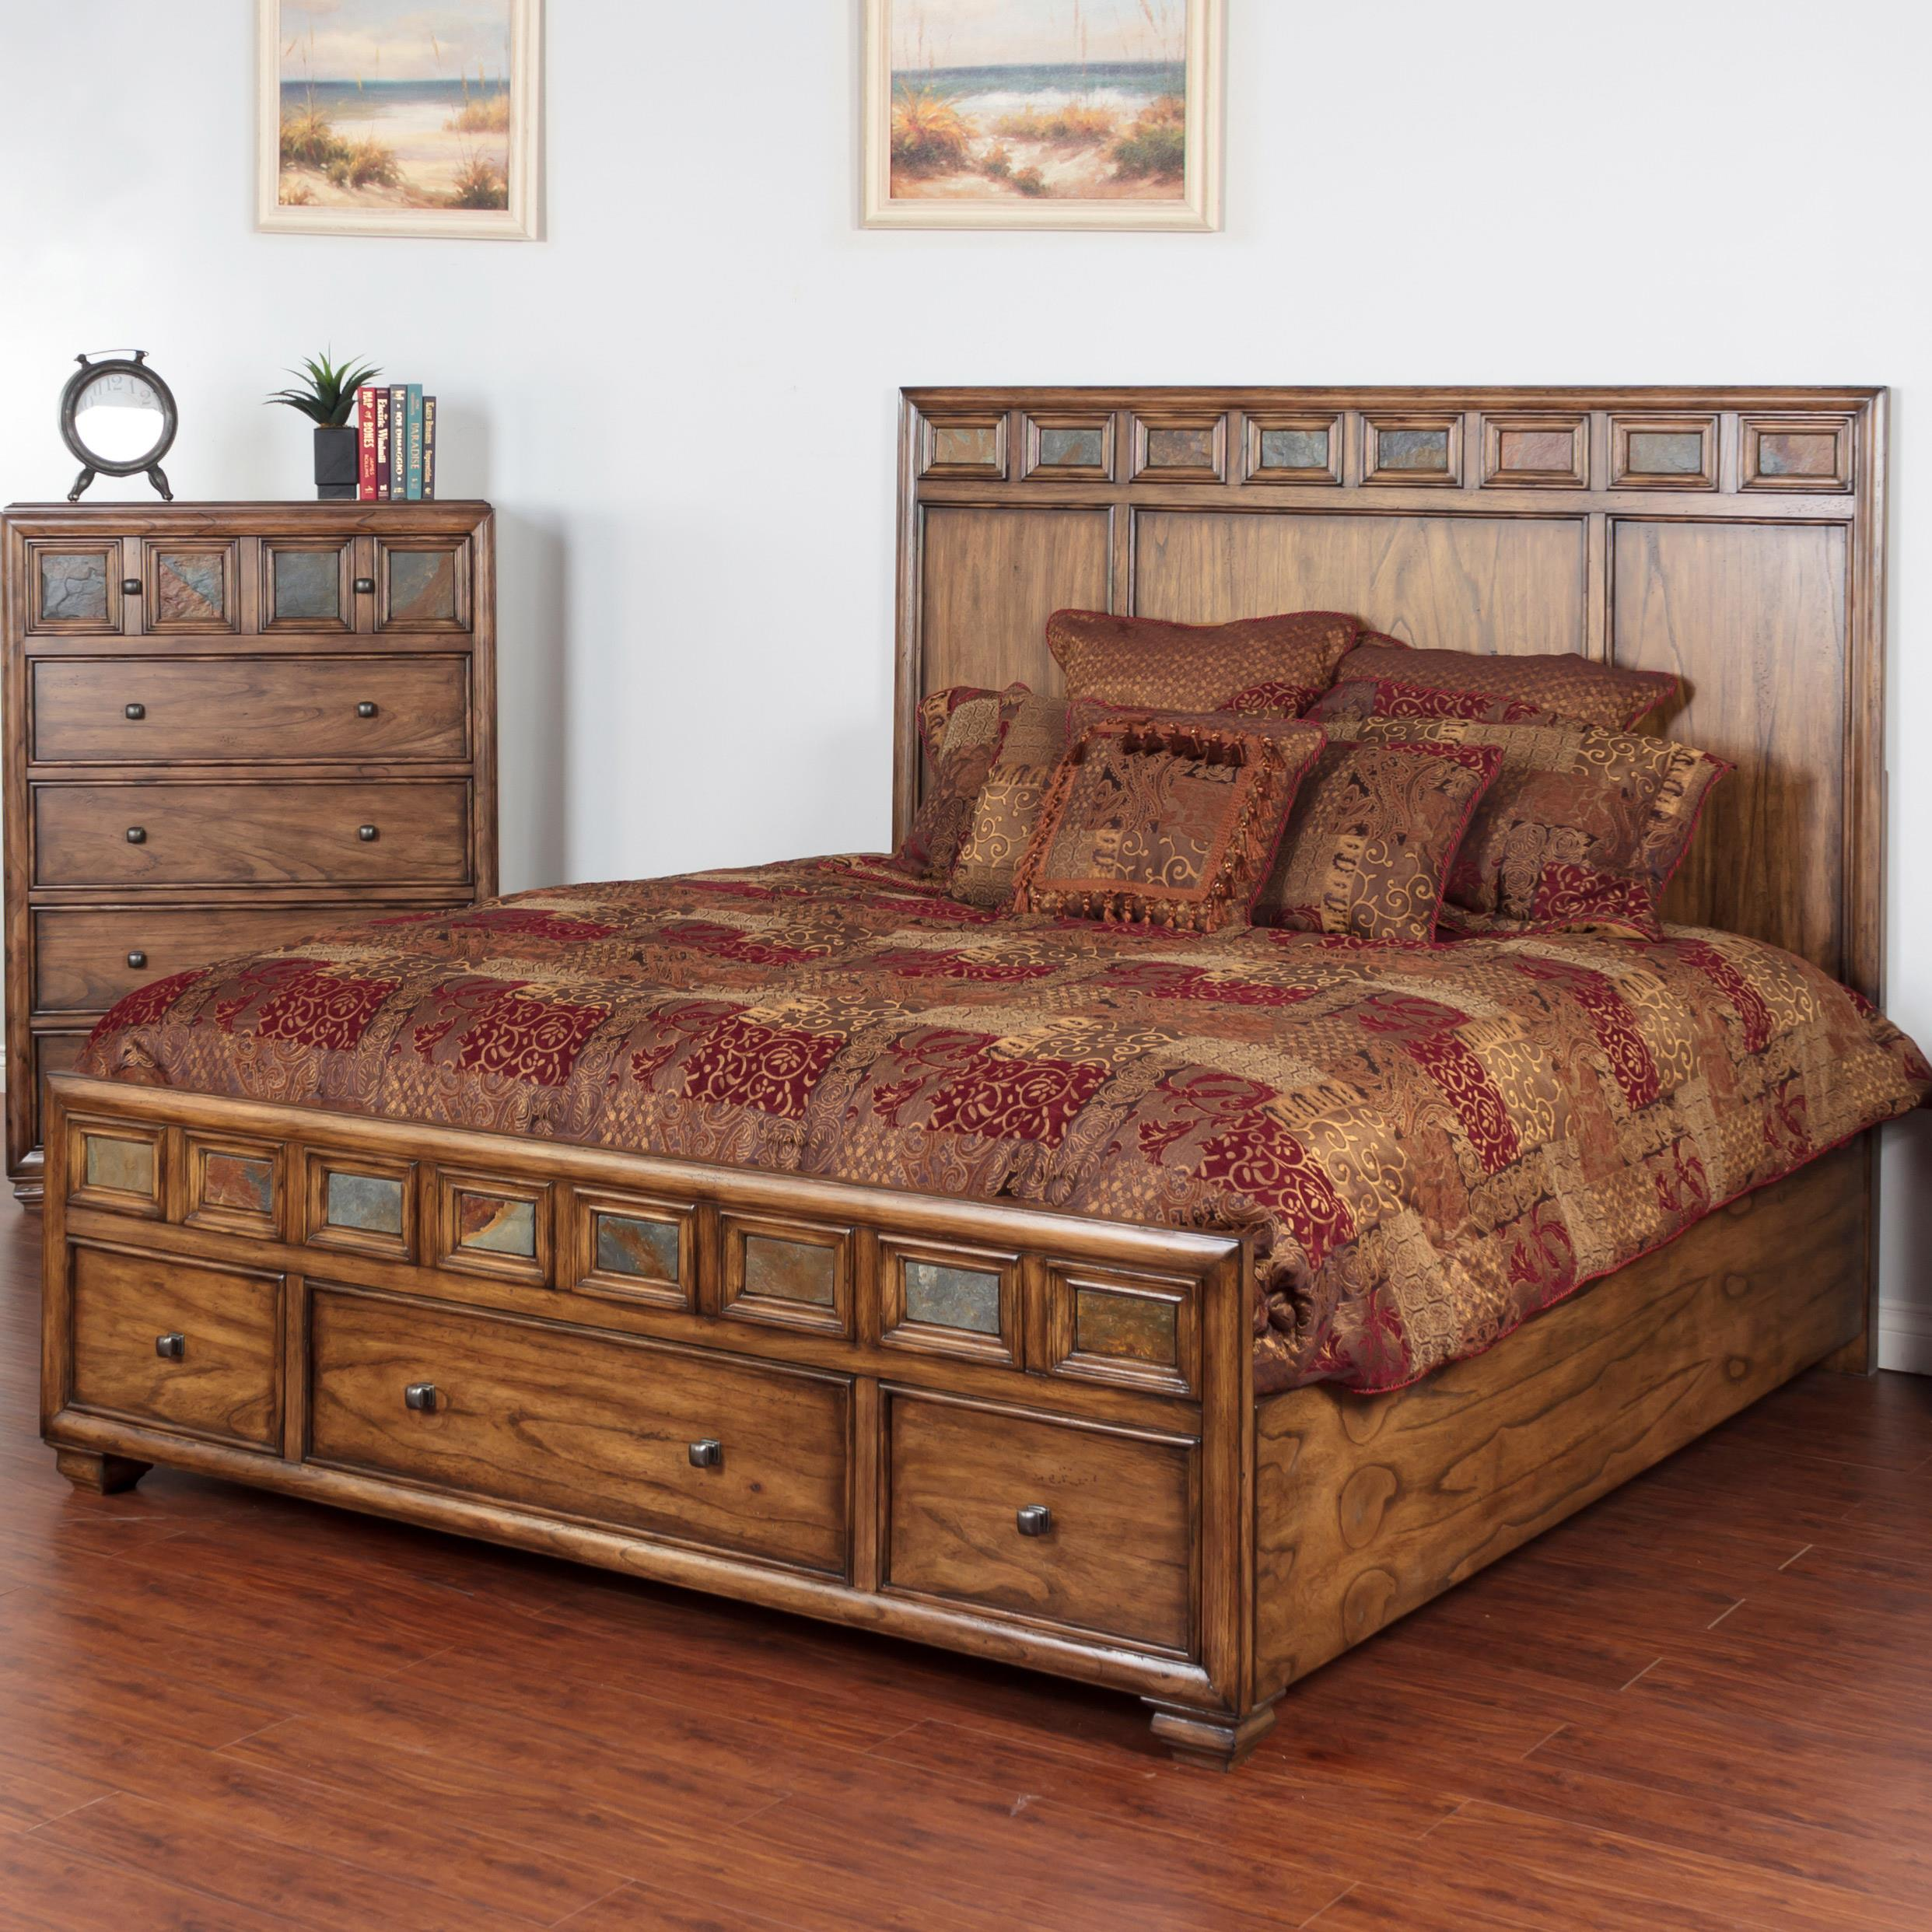 Sunny Designs Coventry Queen Bed with Storage & Slate Tiles - Item Number: 2378BM-Q